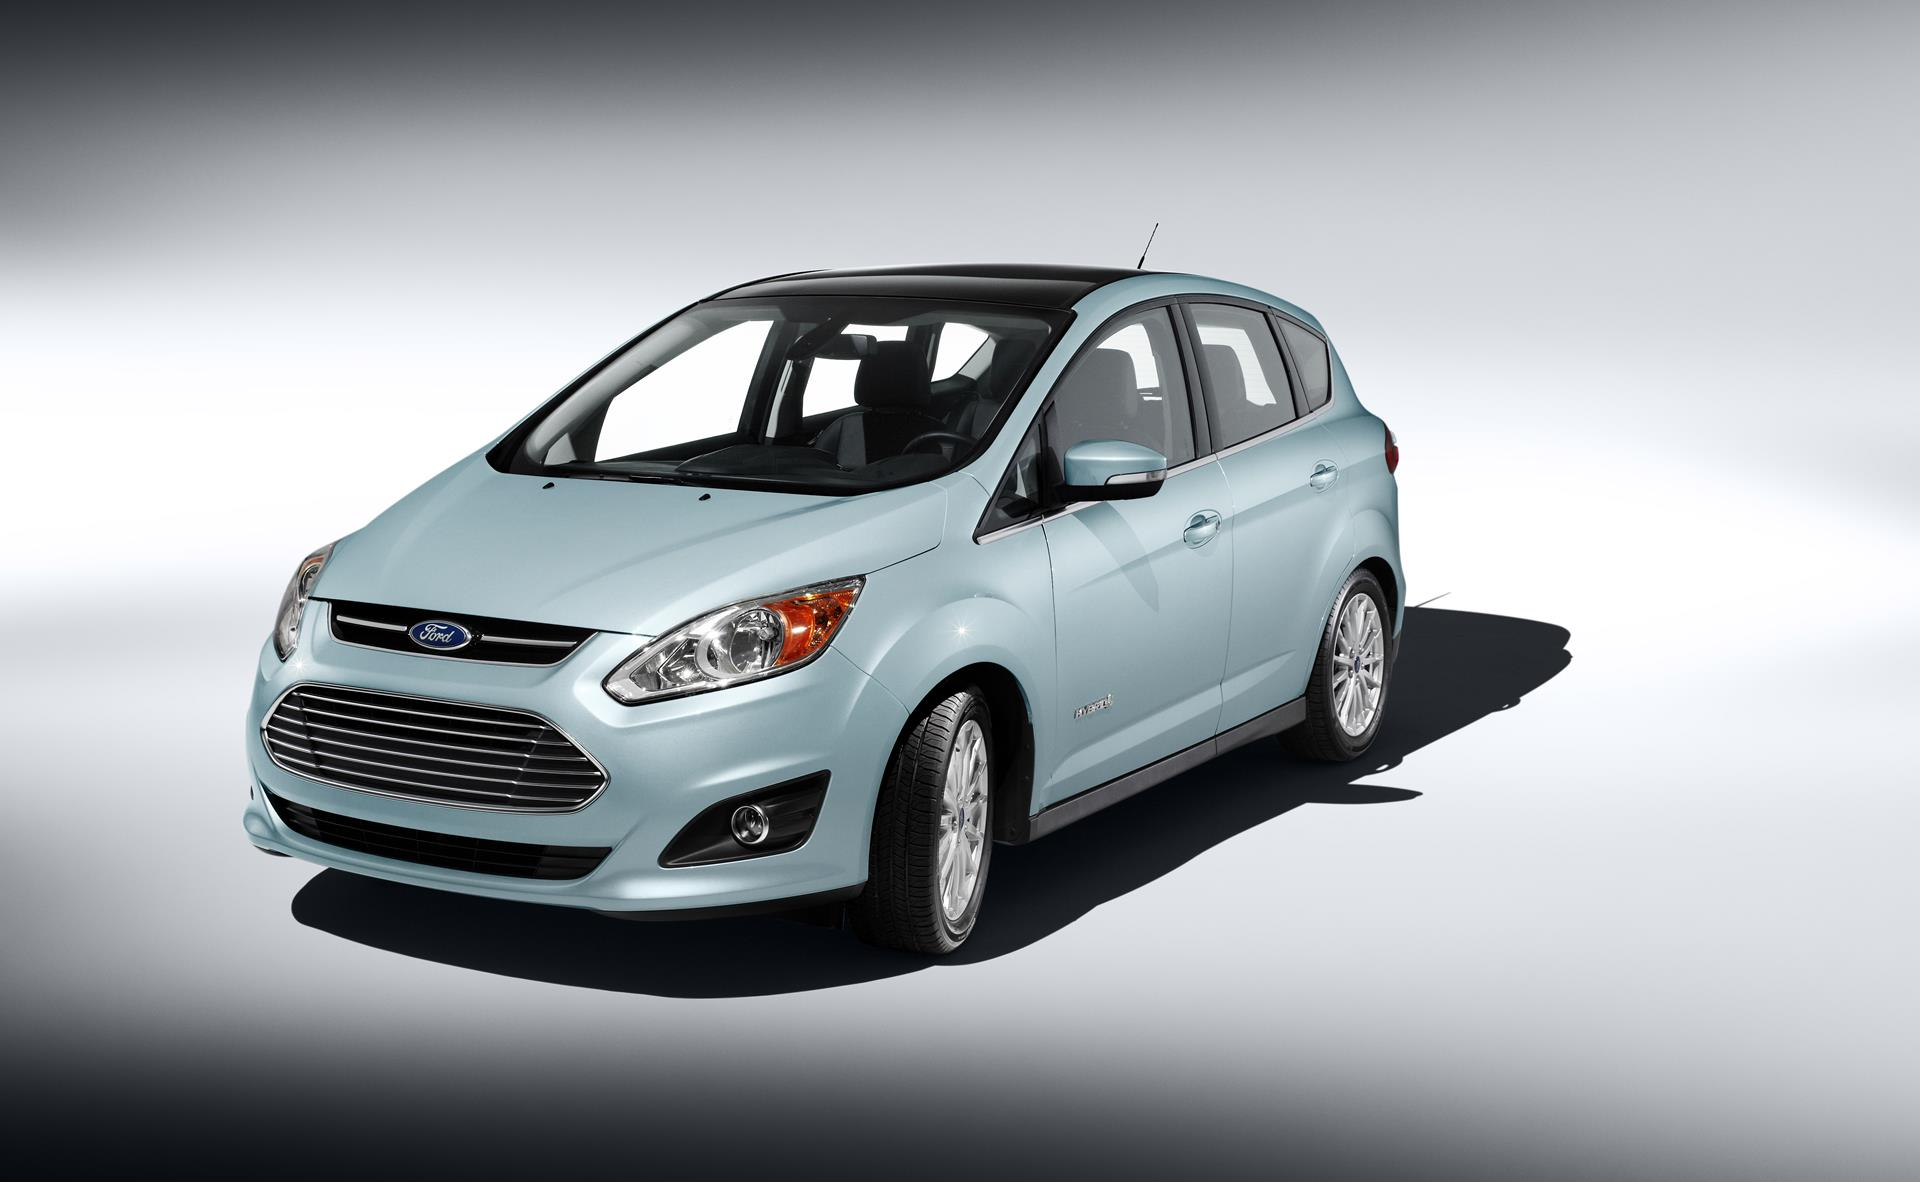 2016 ford c max technical specifications and data engine. Black Bedroom Furniture Sets. Home Design Ideas